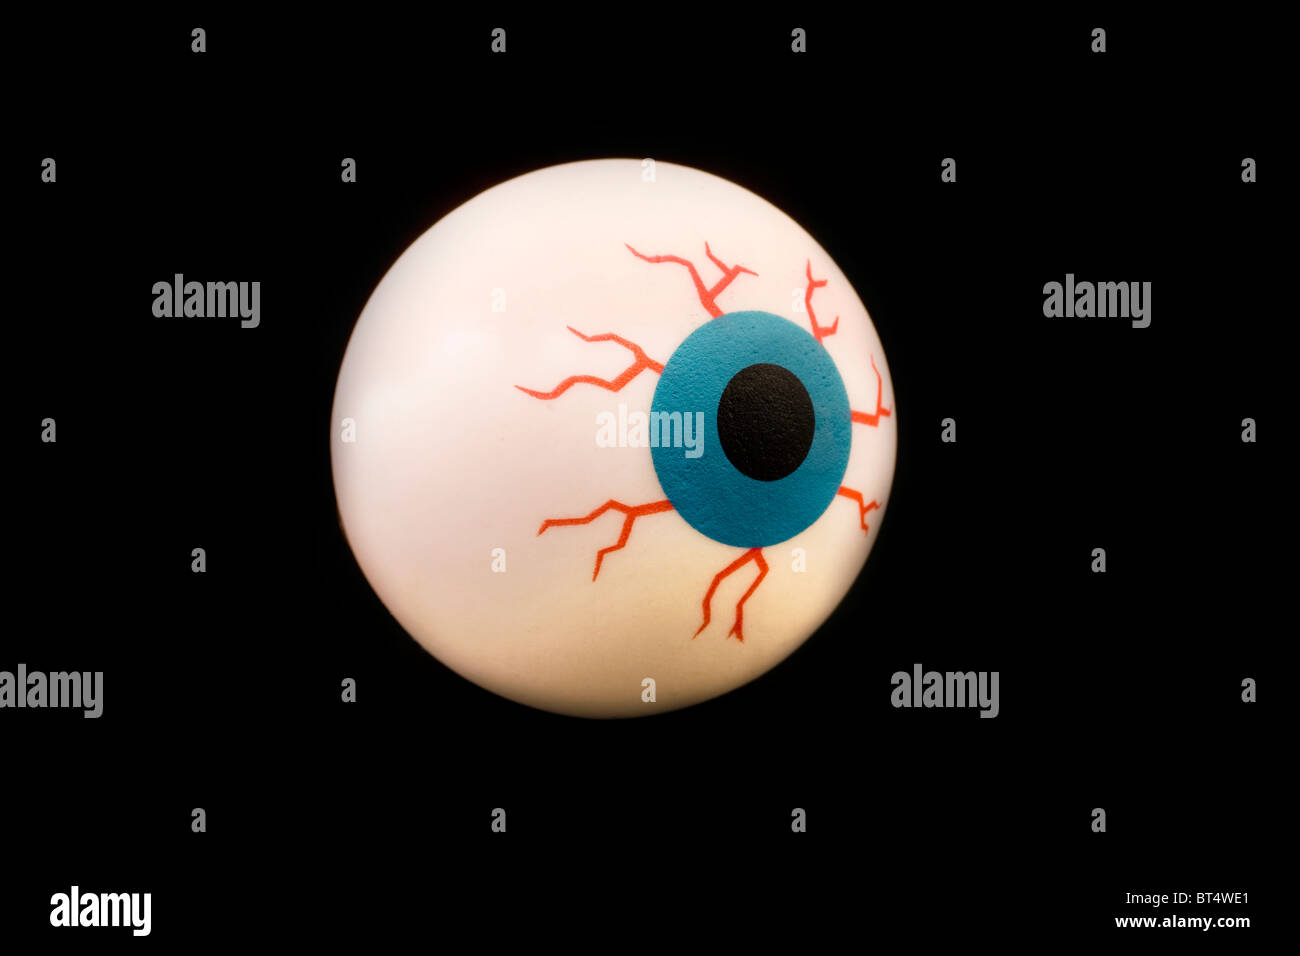 rubber toy eyeball isolated on a black background - Stock Image